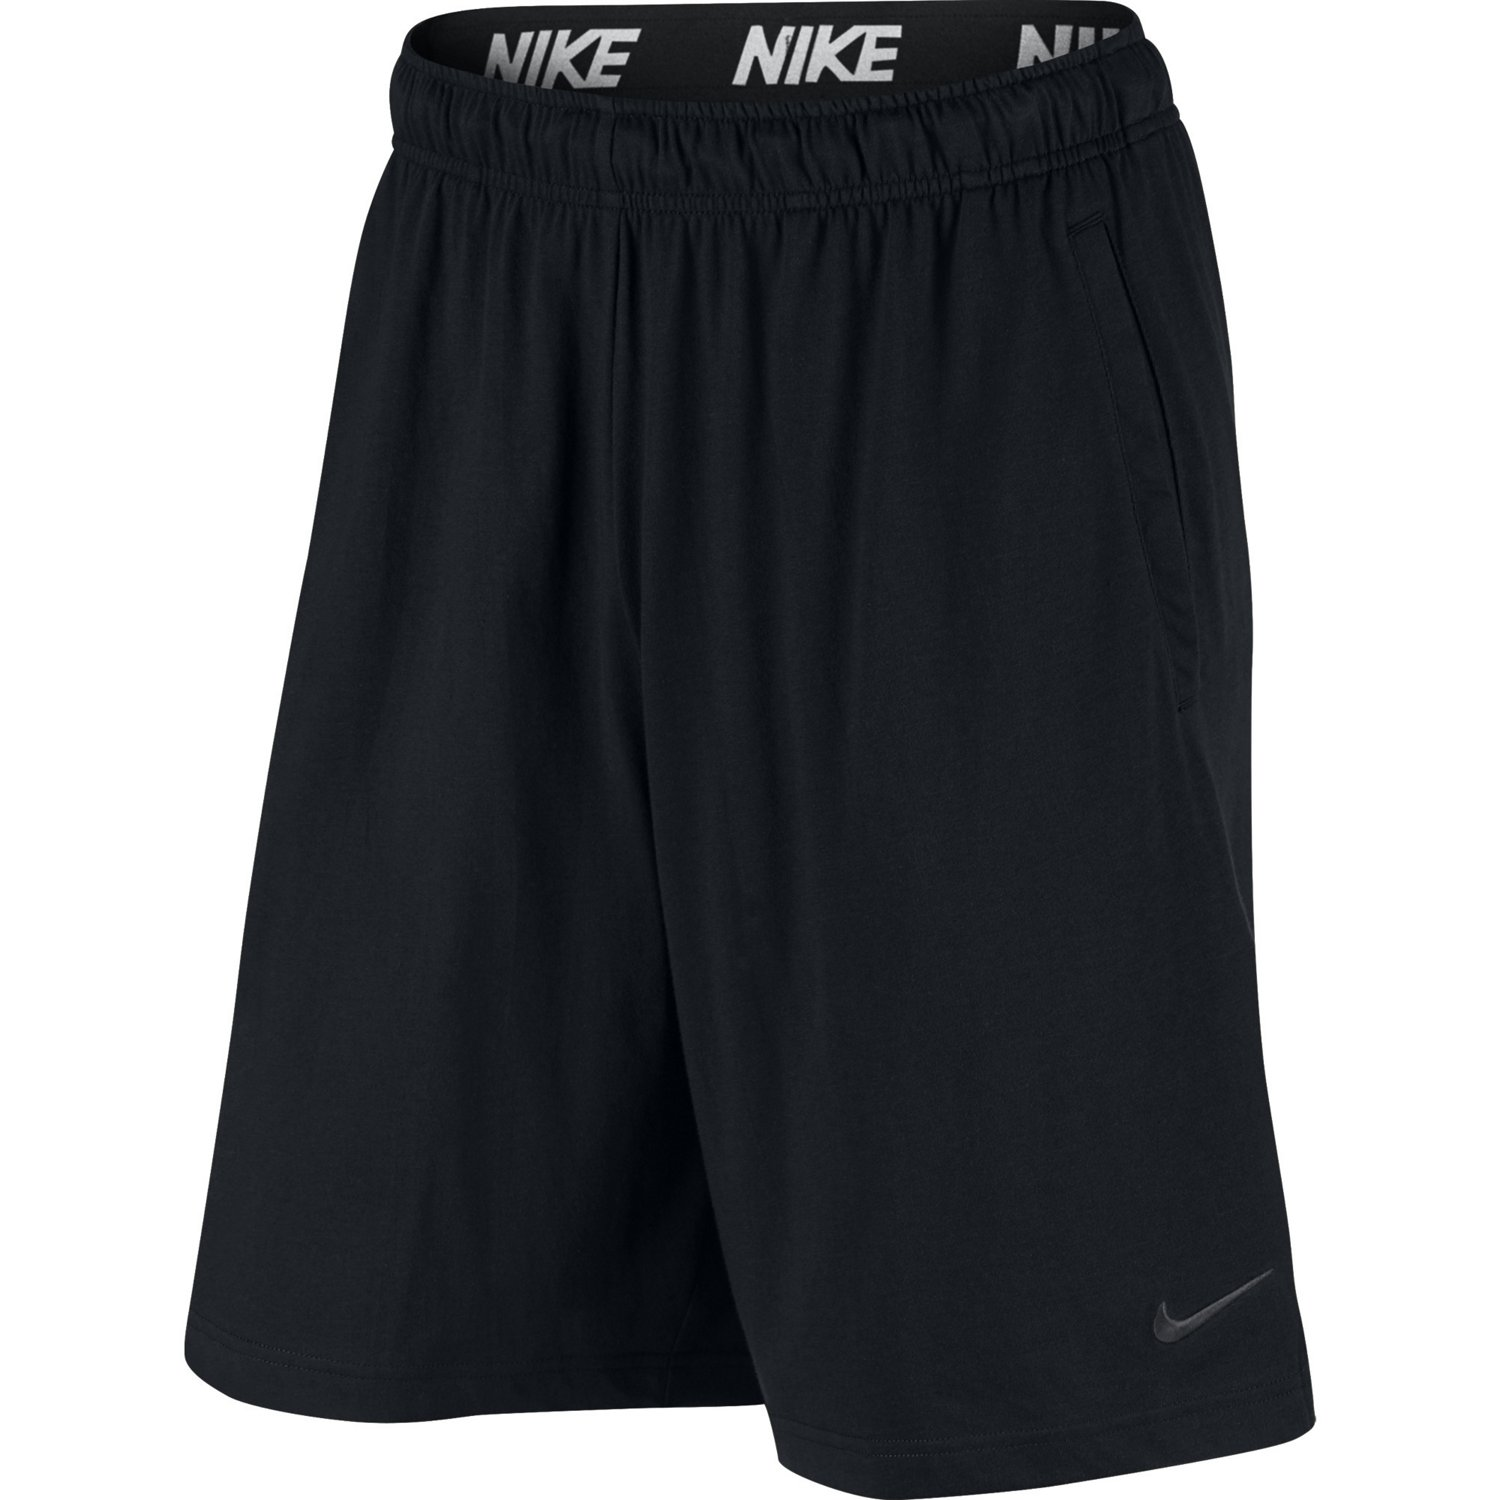 1b4cd5be9e Display product reviews for Nike Men's Training Short